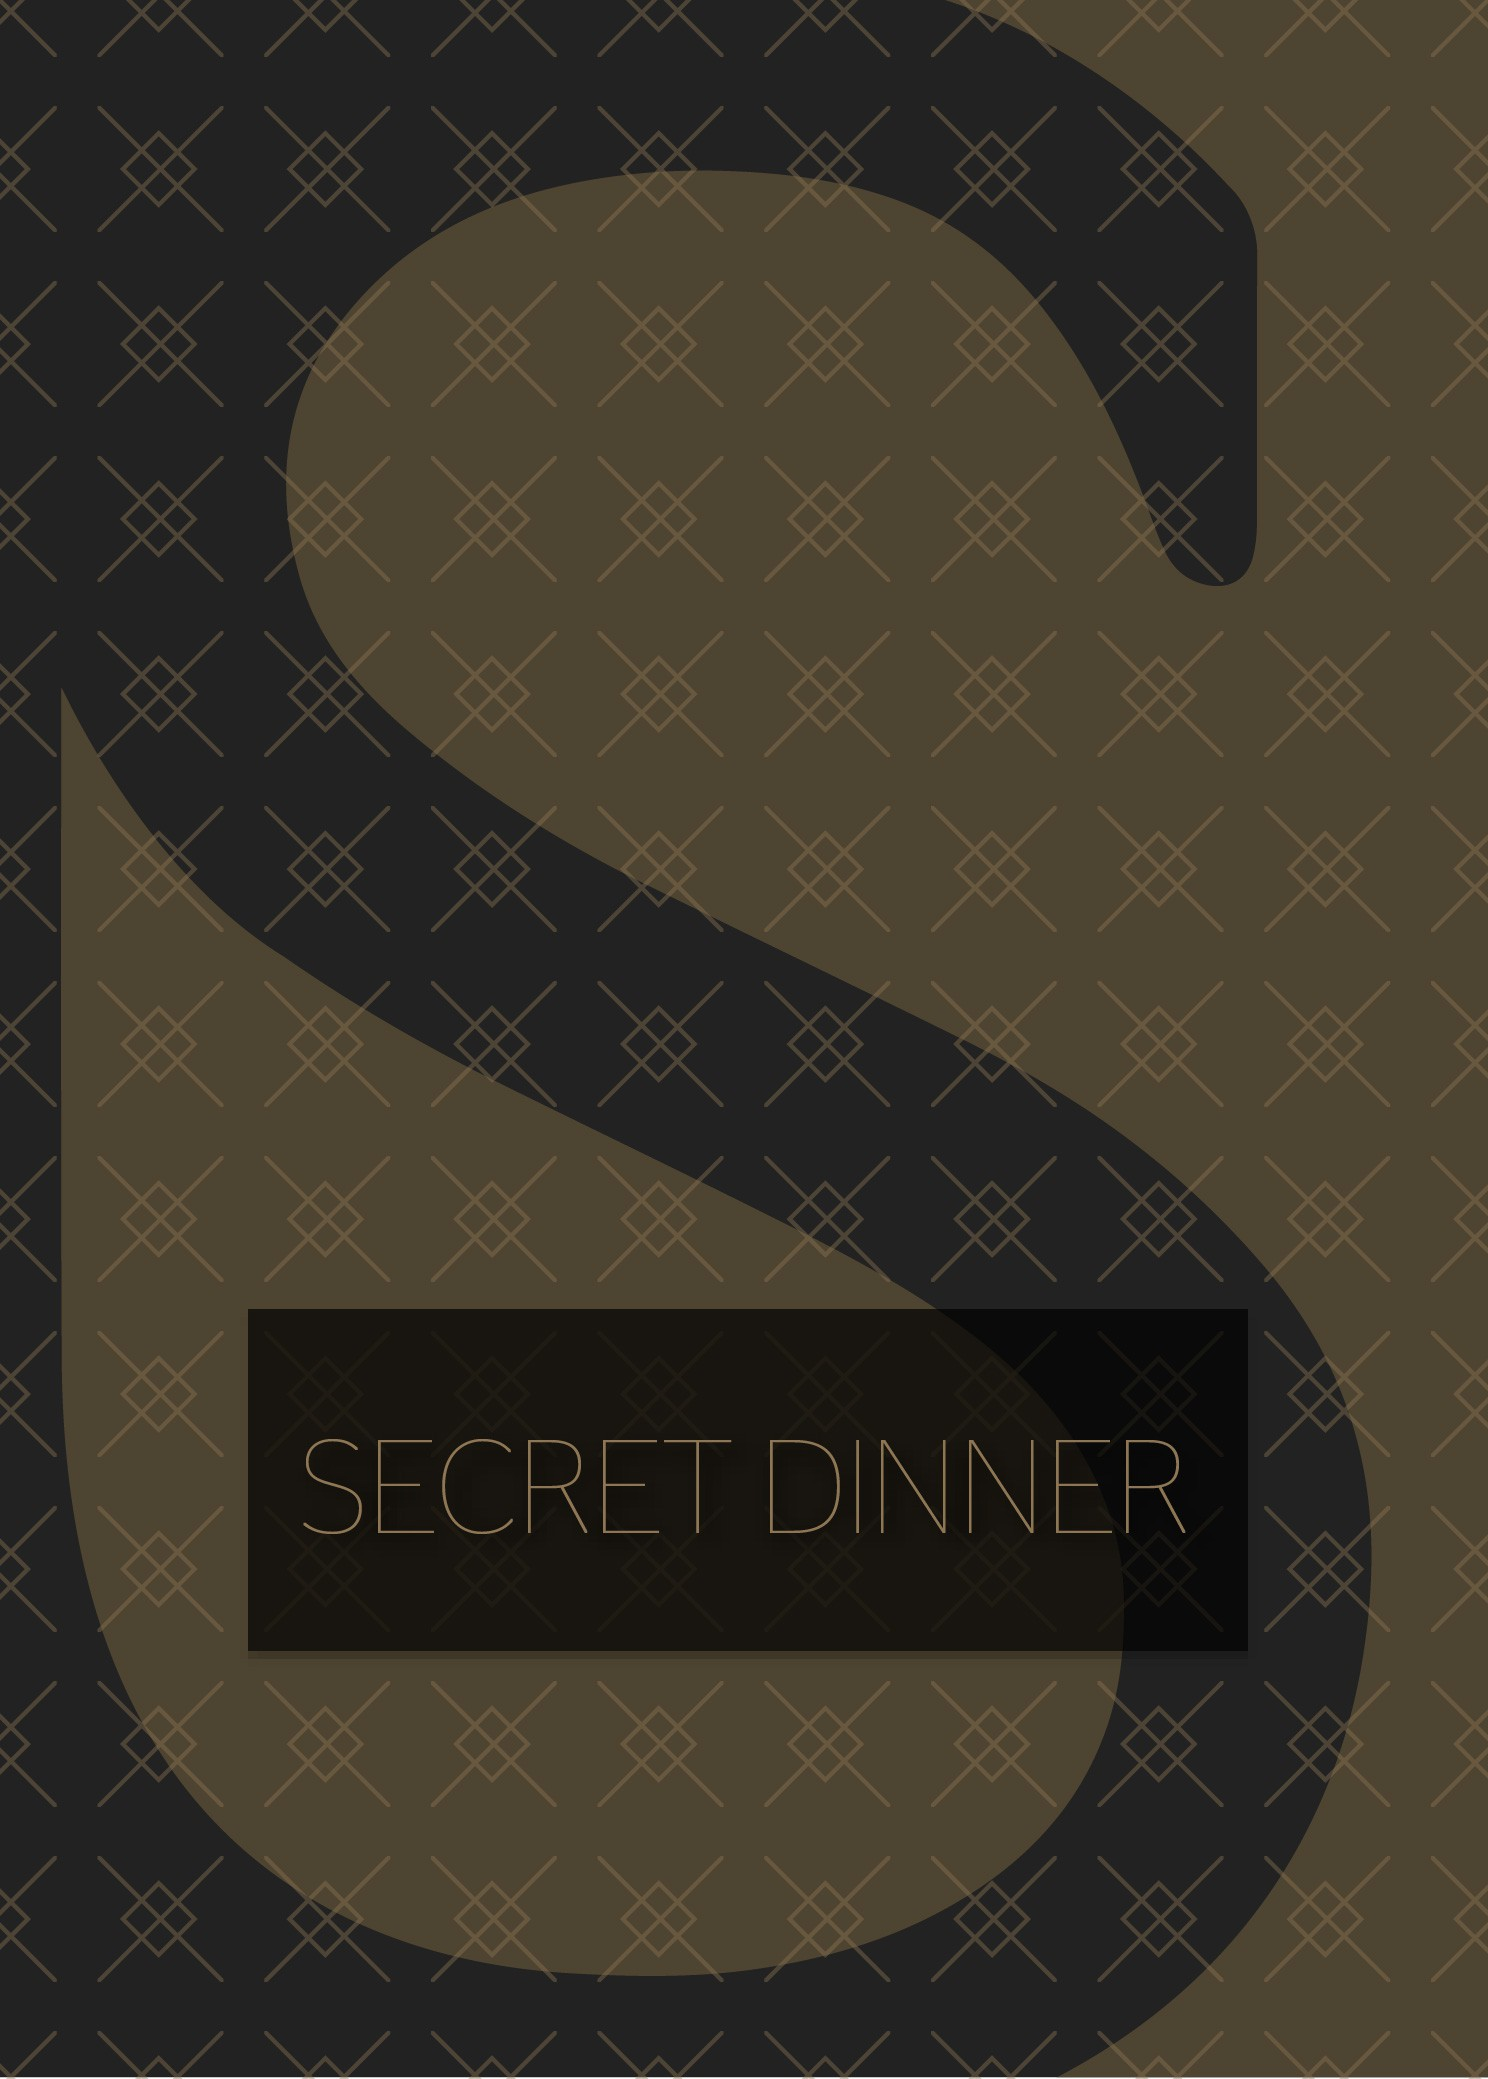 Pokercard SECRET DINNER